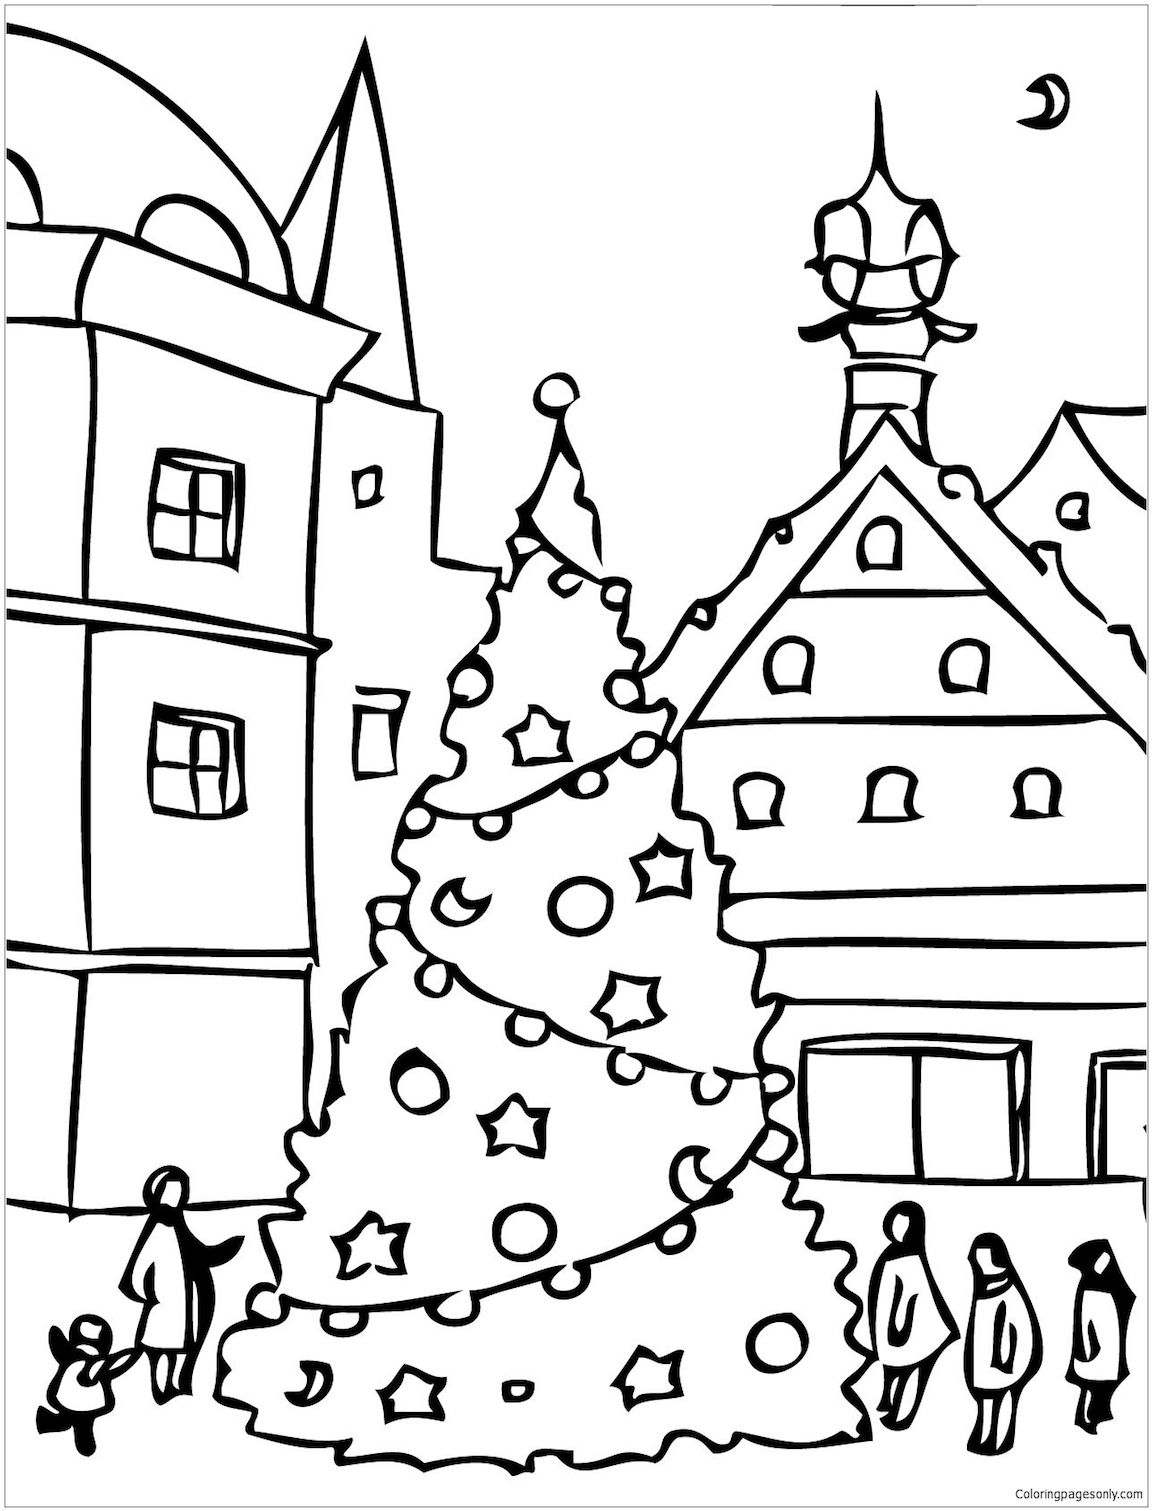 Free Christmas Coloring Pages For Advanced Colorers And ...